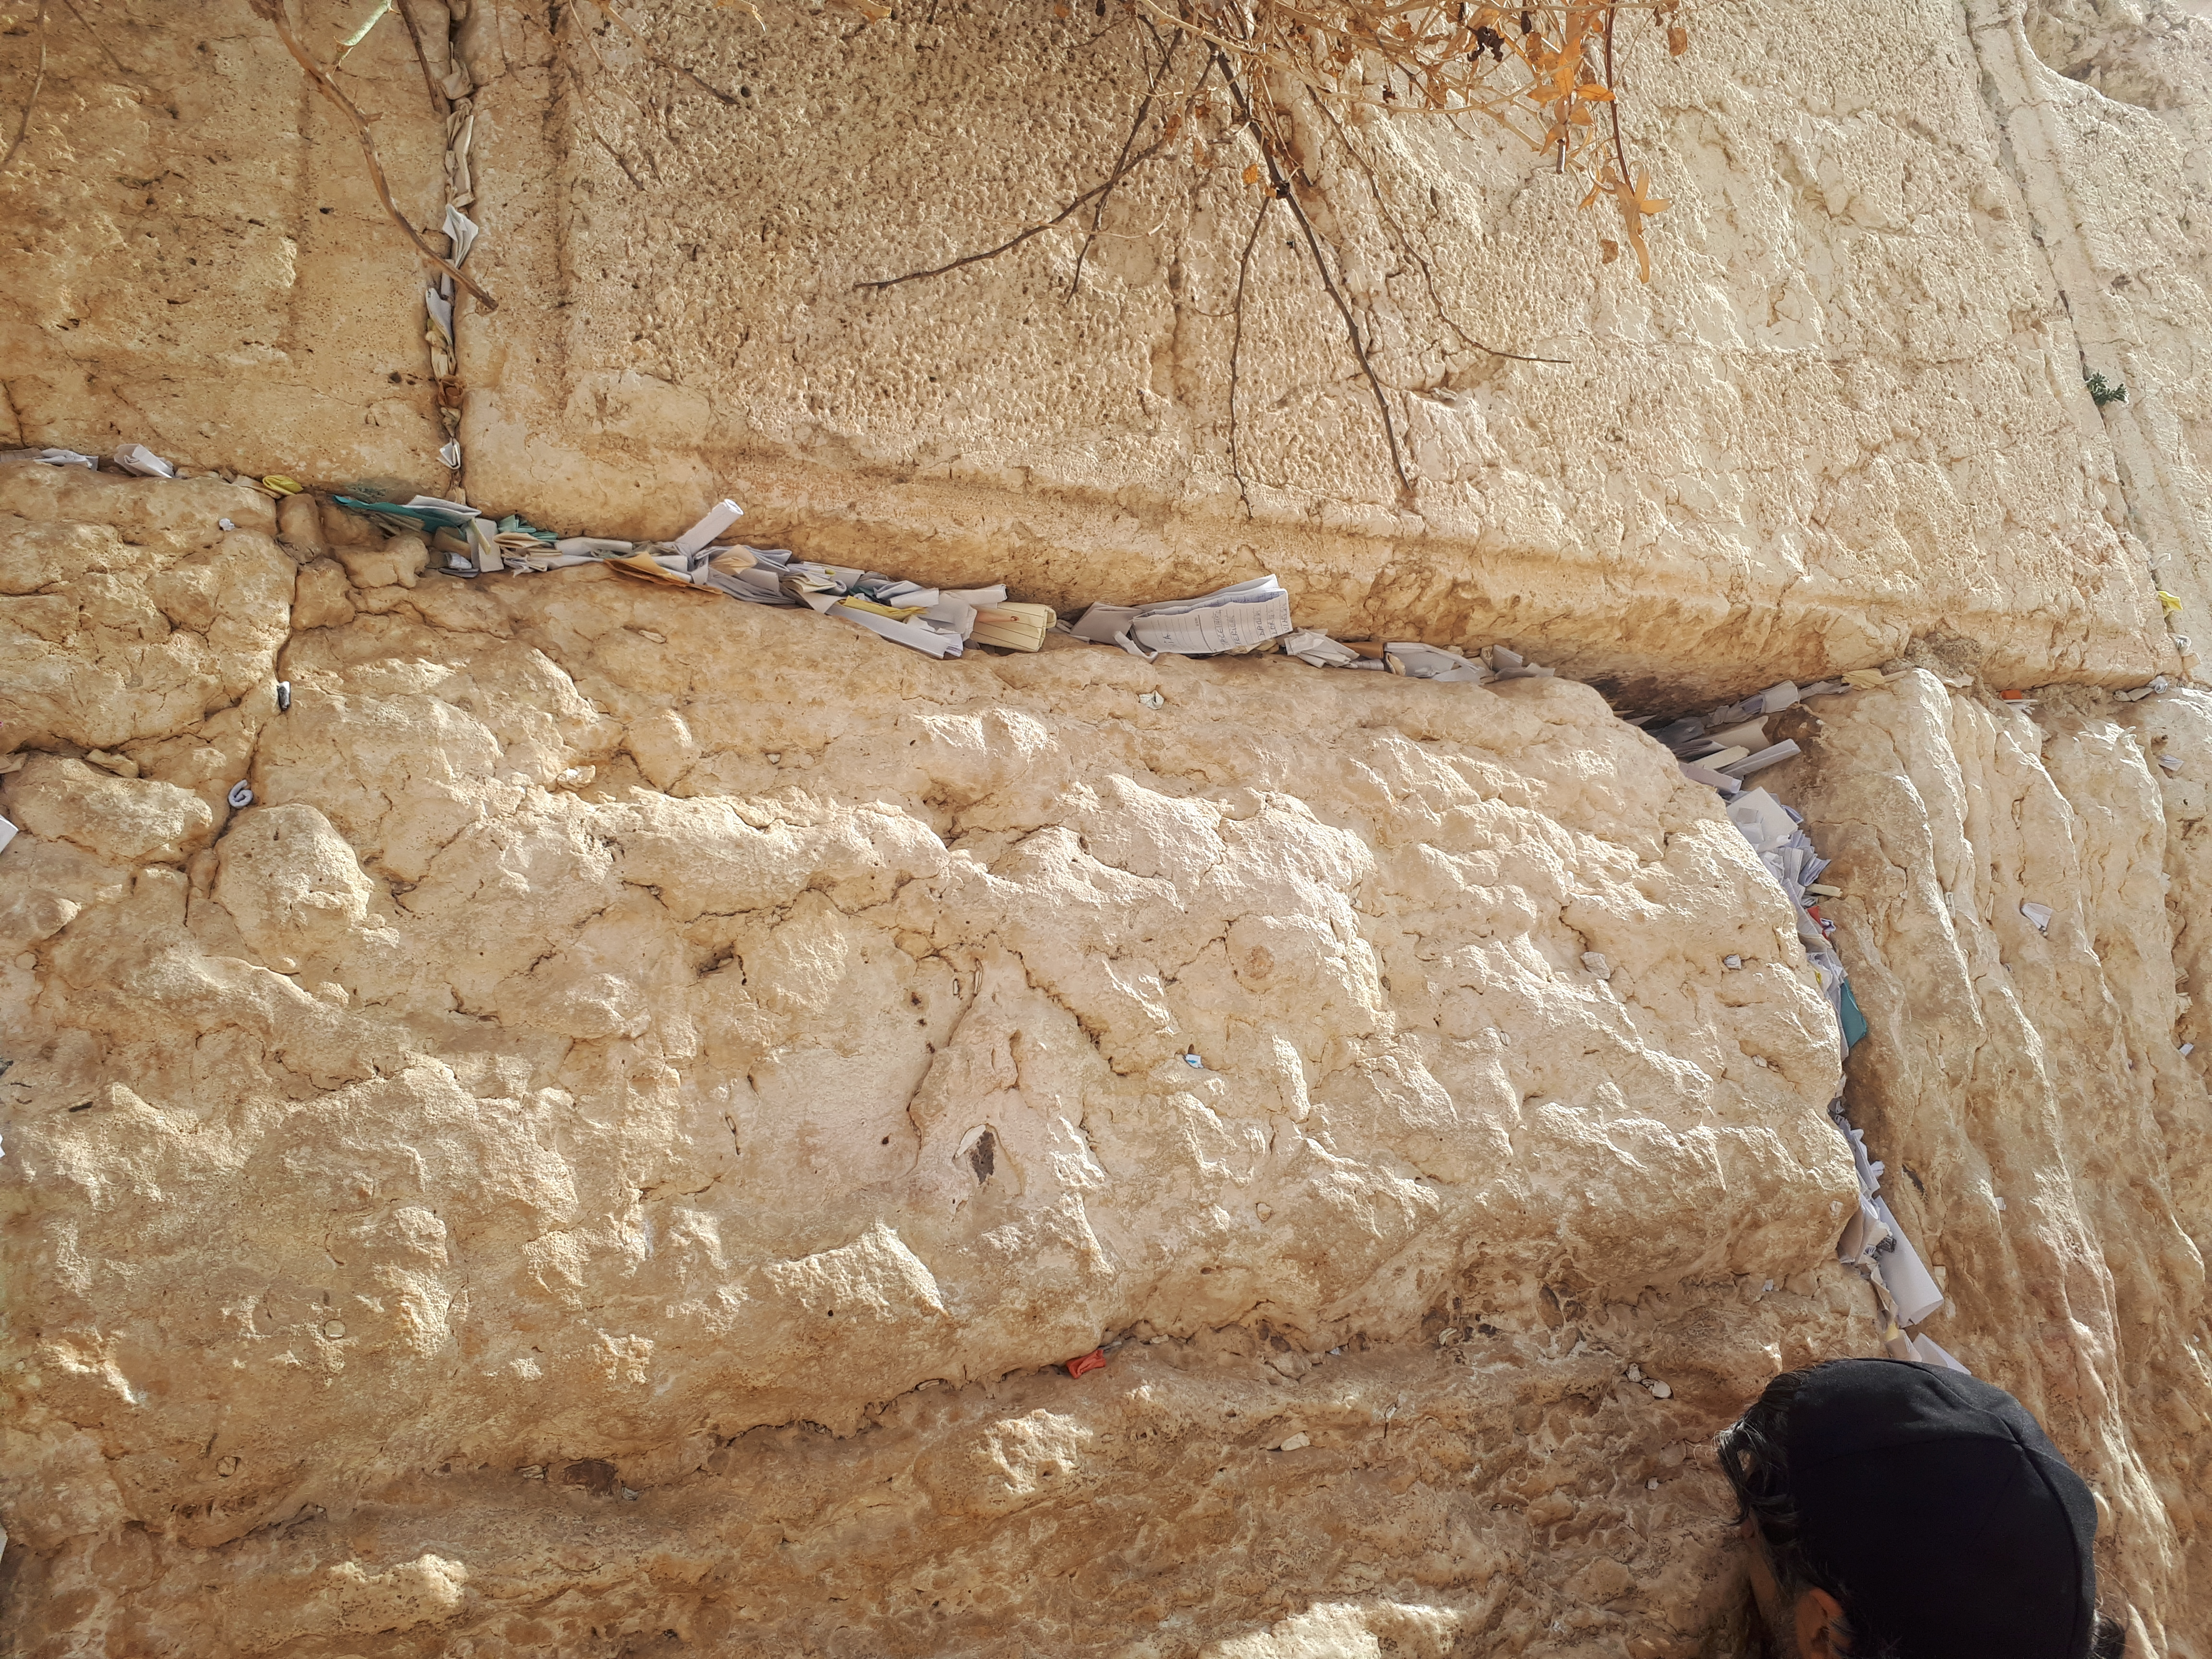 Notes in the Kotel